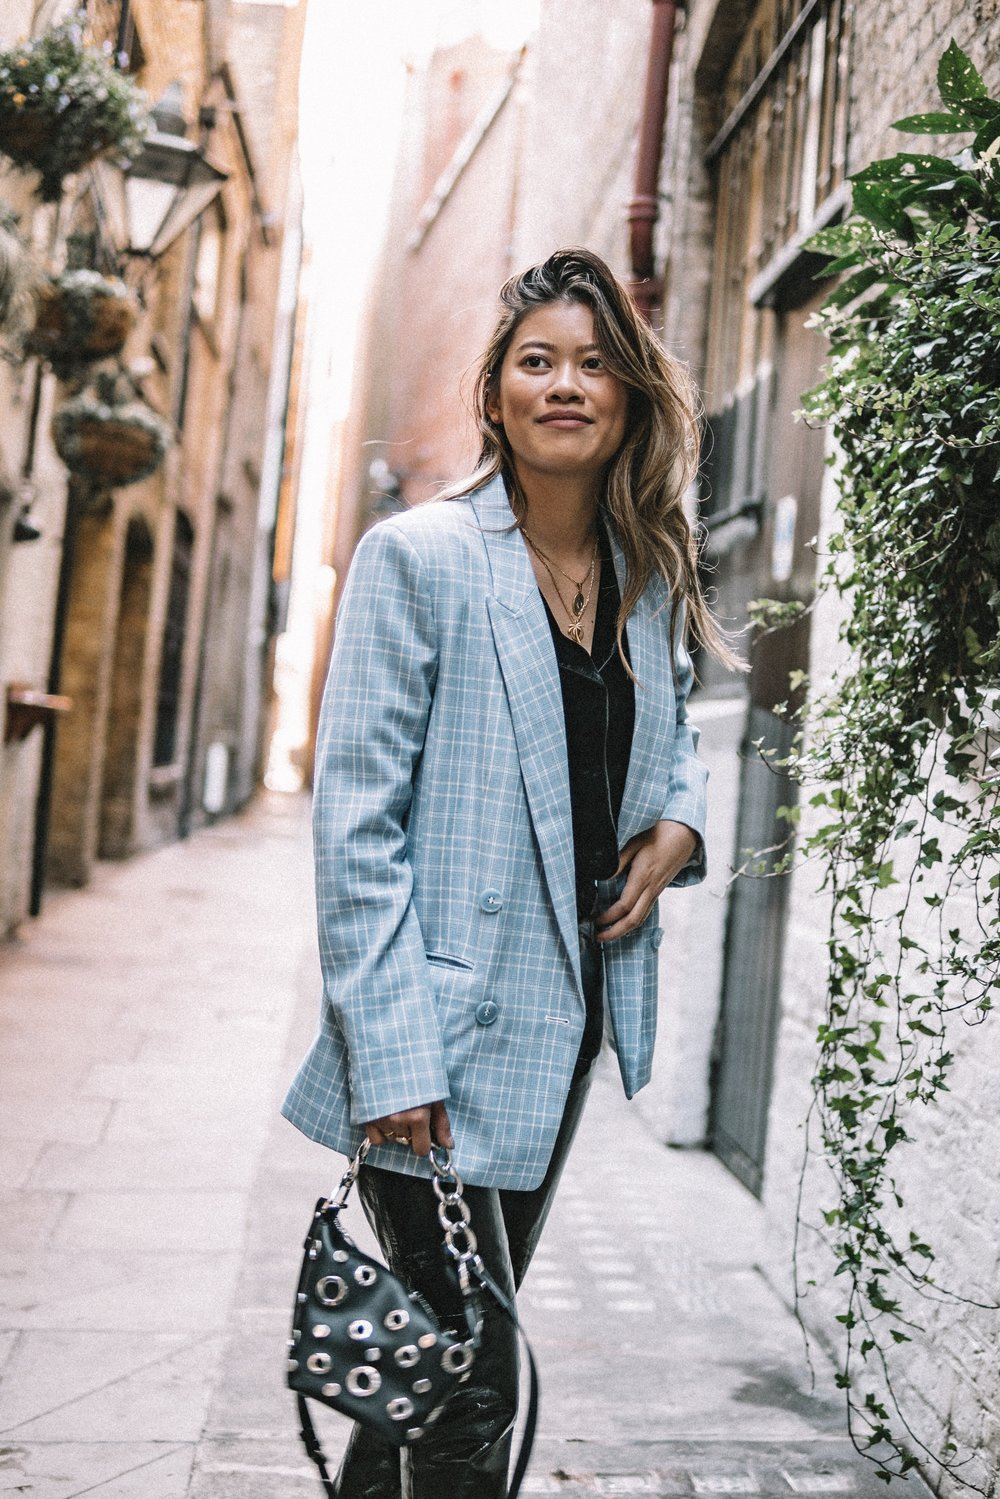 This checkered blazer has got to be one of my favourite transitional pieces for spring. Keeping it suited to the weather but with a lighter, more refreshing colour will uplift your mood and spirit. -